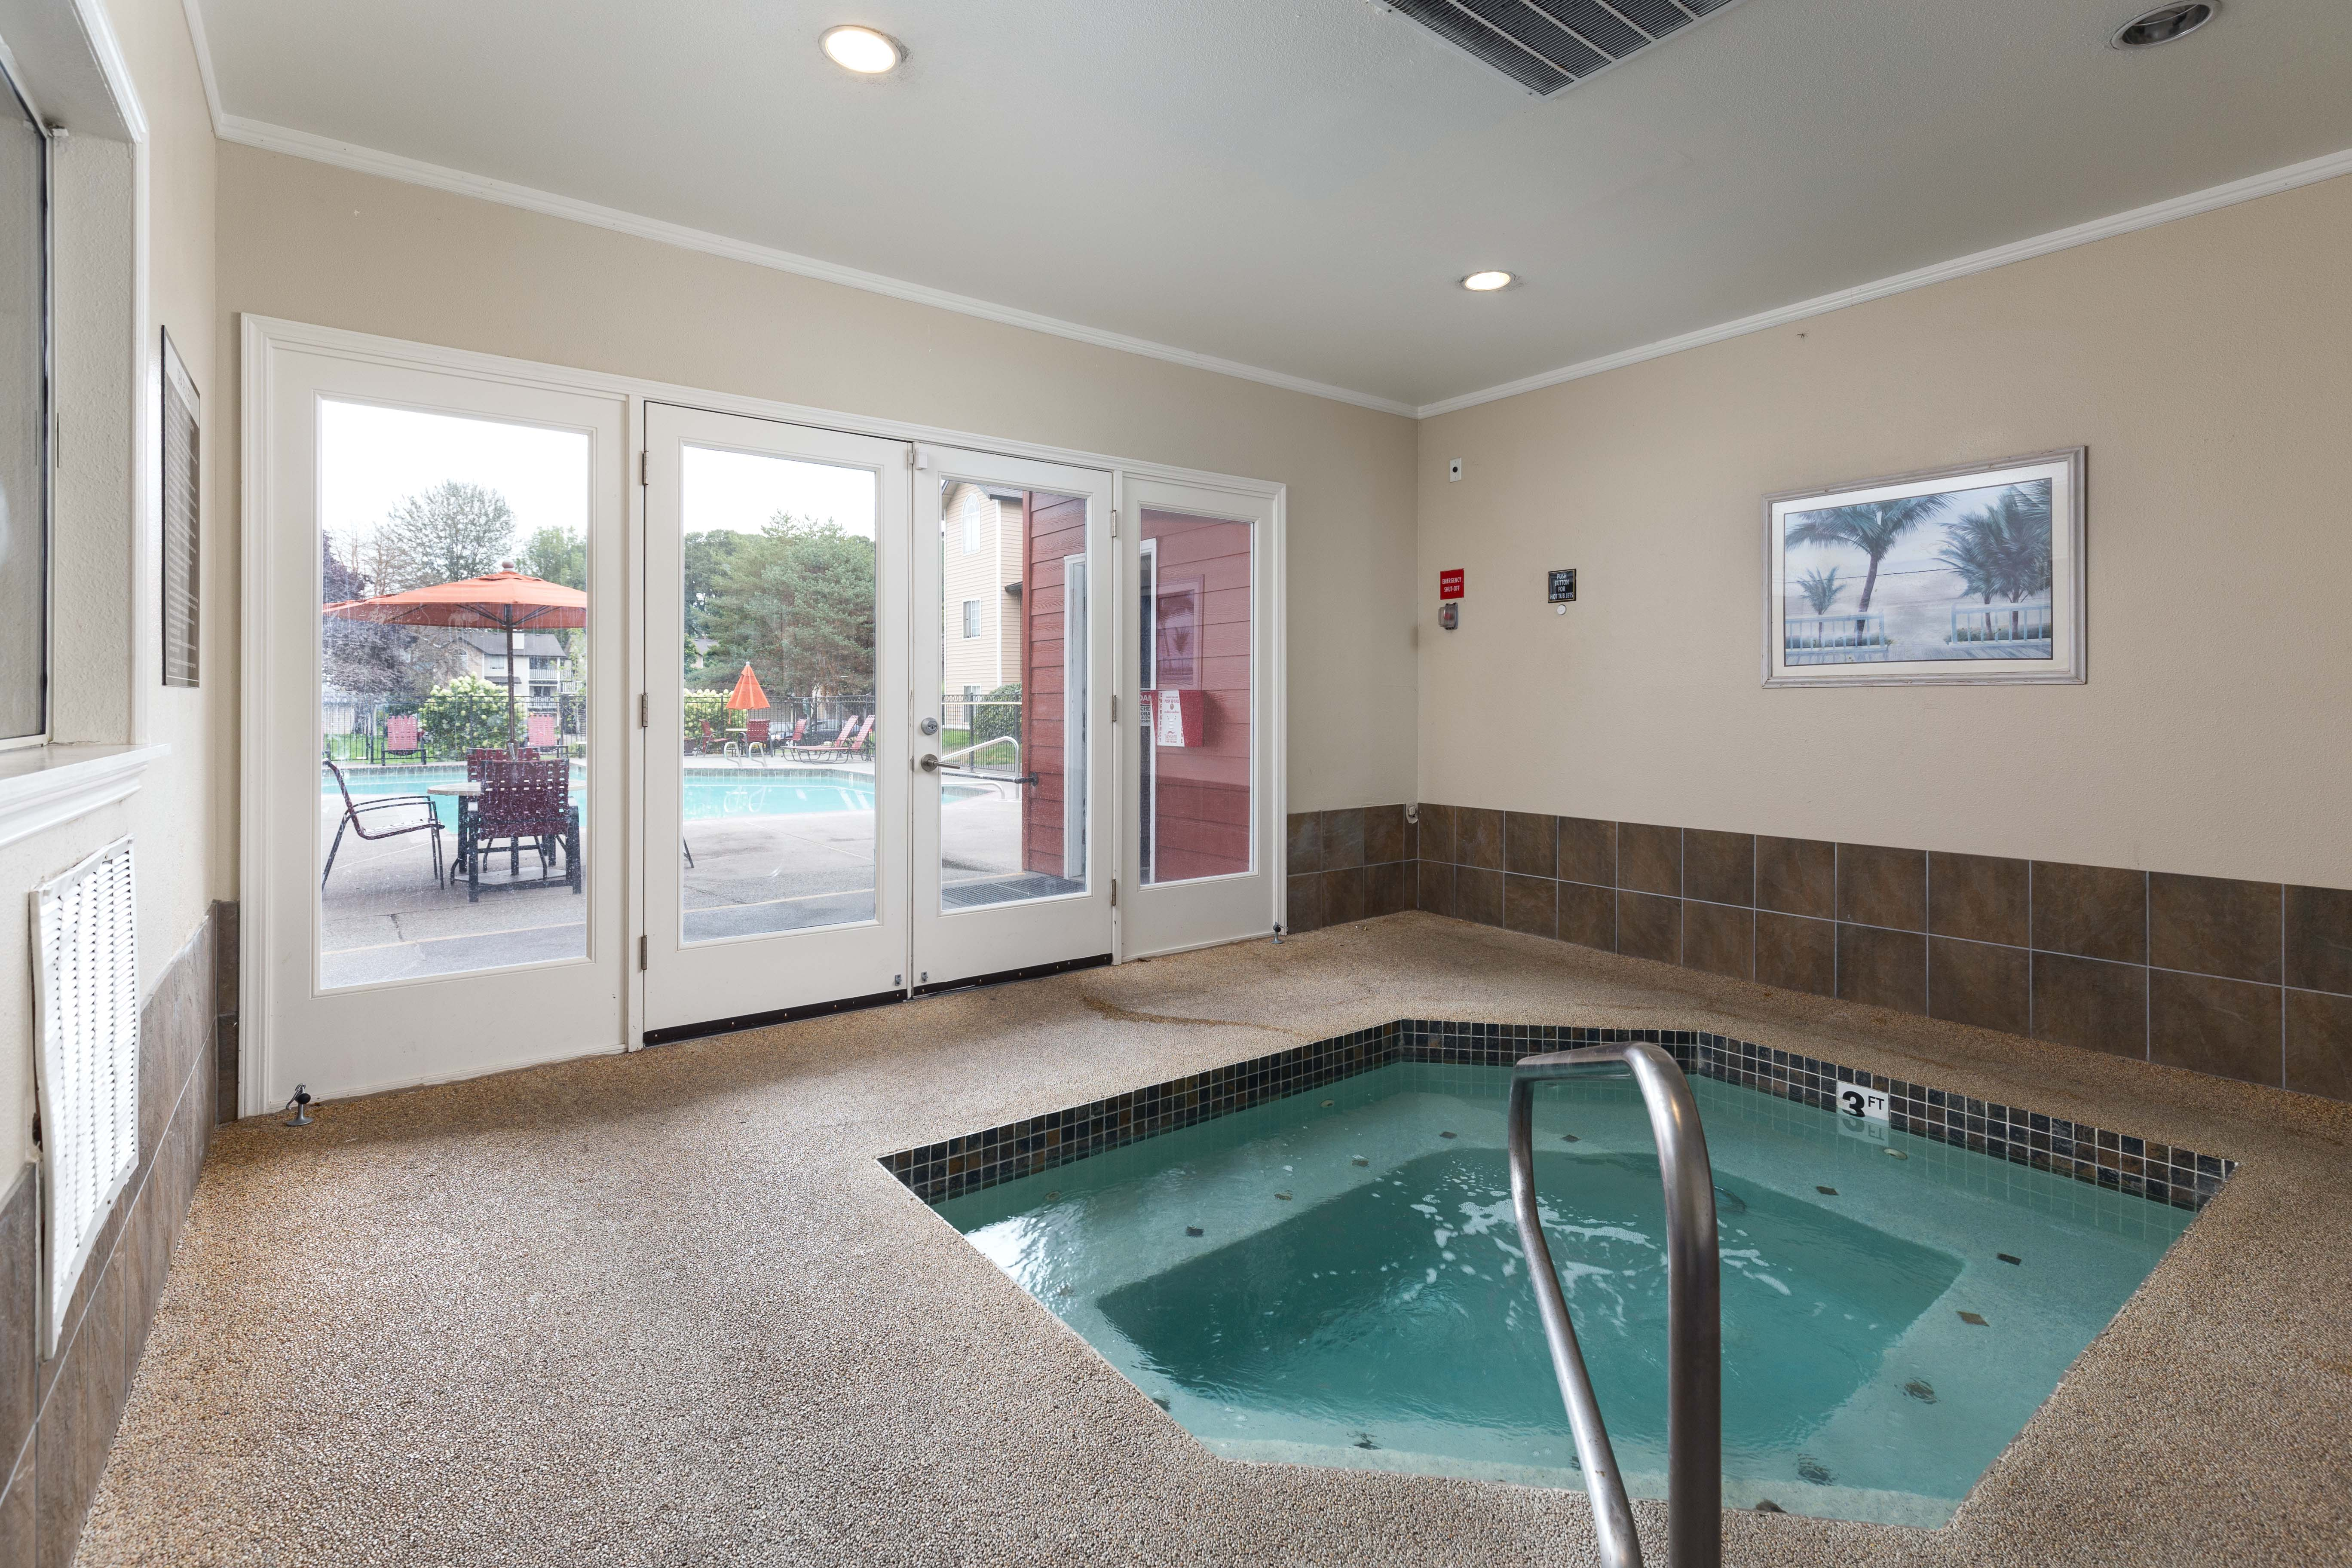 Indoors Hot Tub at Walnut Grove Landing Apartments in Vancouver, WA